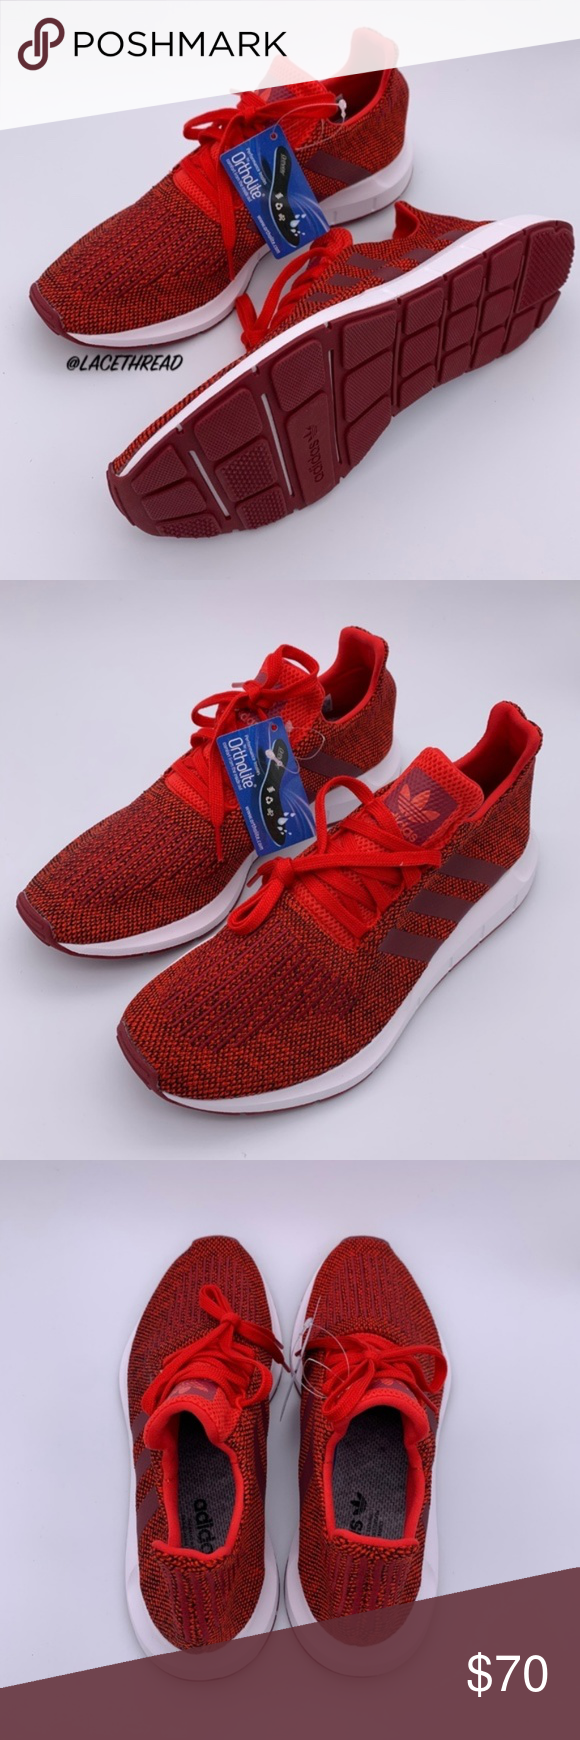 6a98131b90896 Men s Swift Run Running Shoes Collegiate CG4117 Brand  adidas Condition   NEW WITHOUT BOX Color